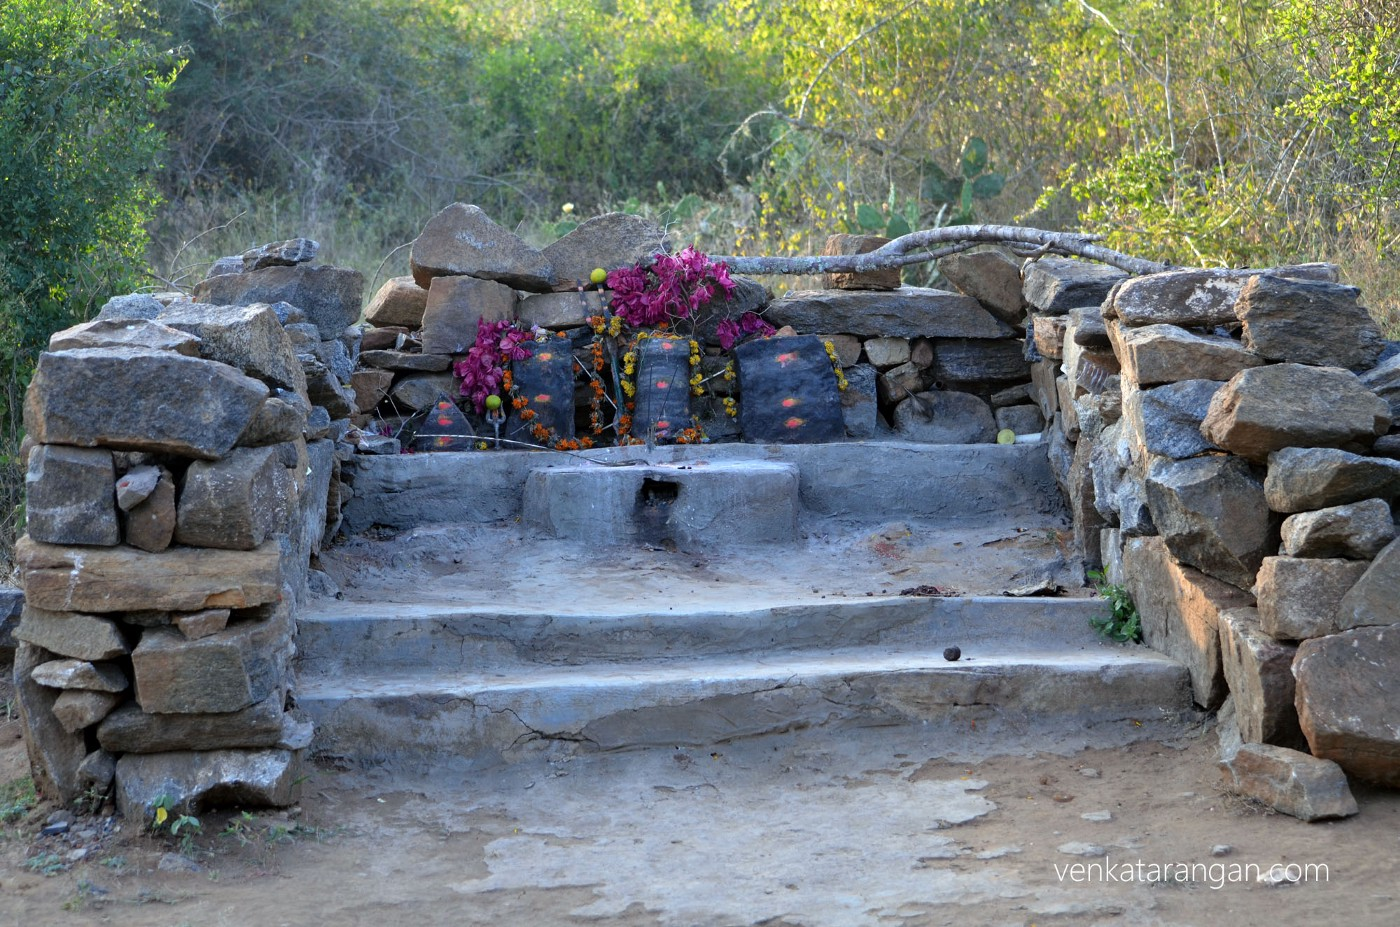 The black stones represent the Gods & Goddess, worshipped by local tribes in the area